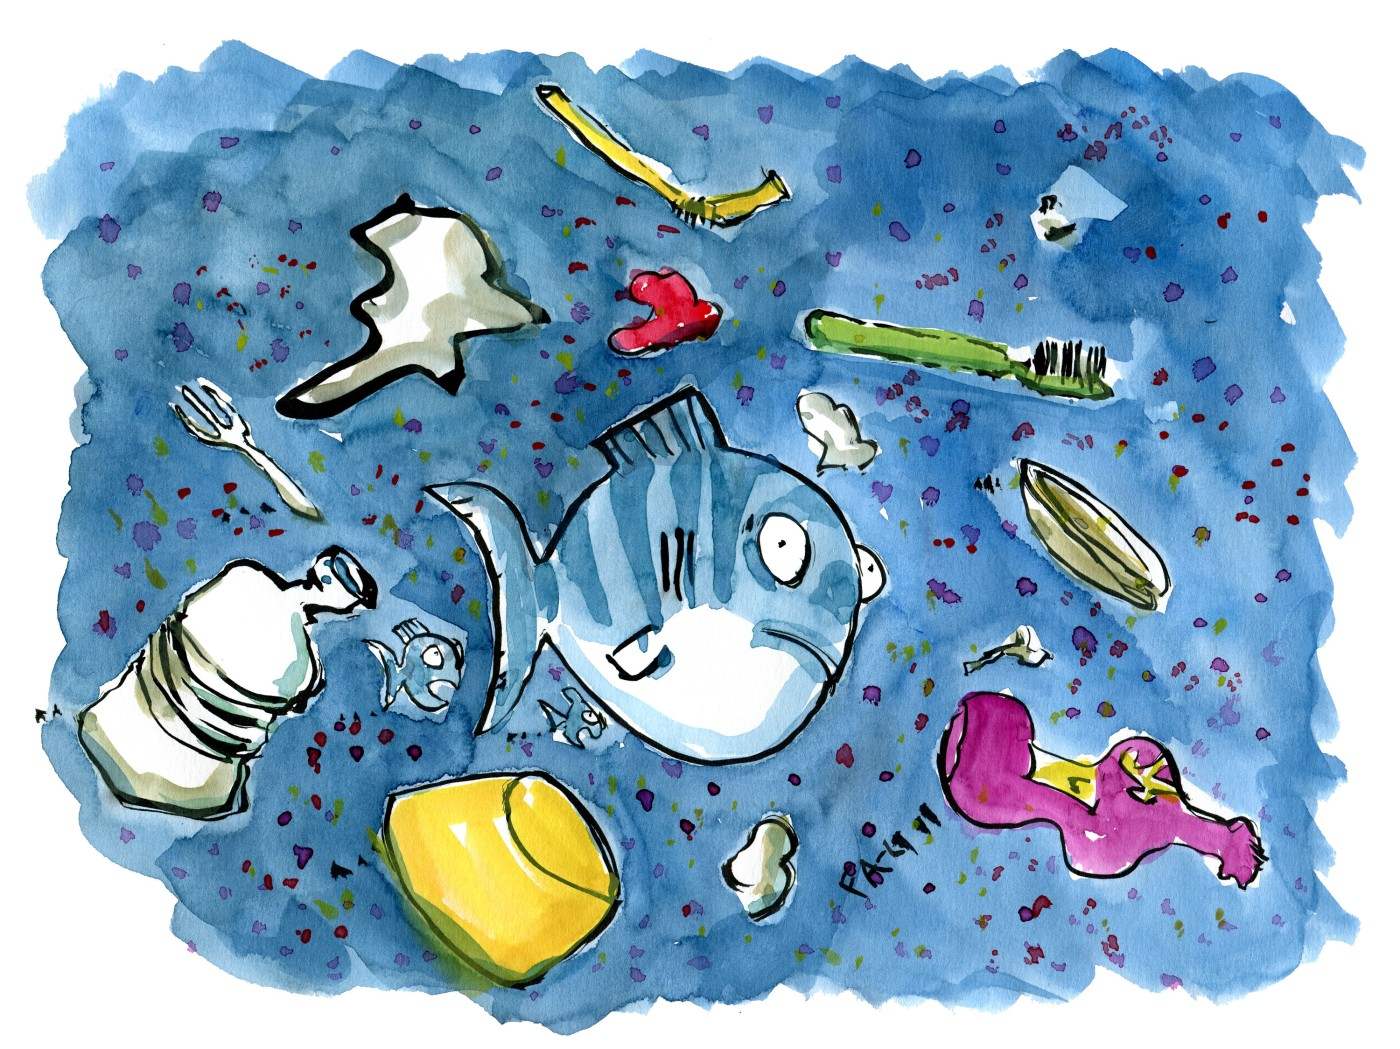 Drawing of a fish surrounded by plastic waste. Illustration by Frits Ahlefeldt